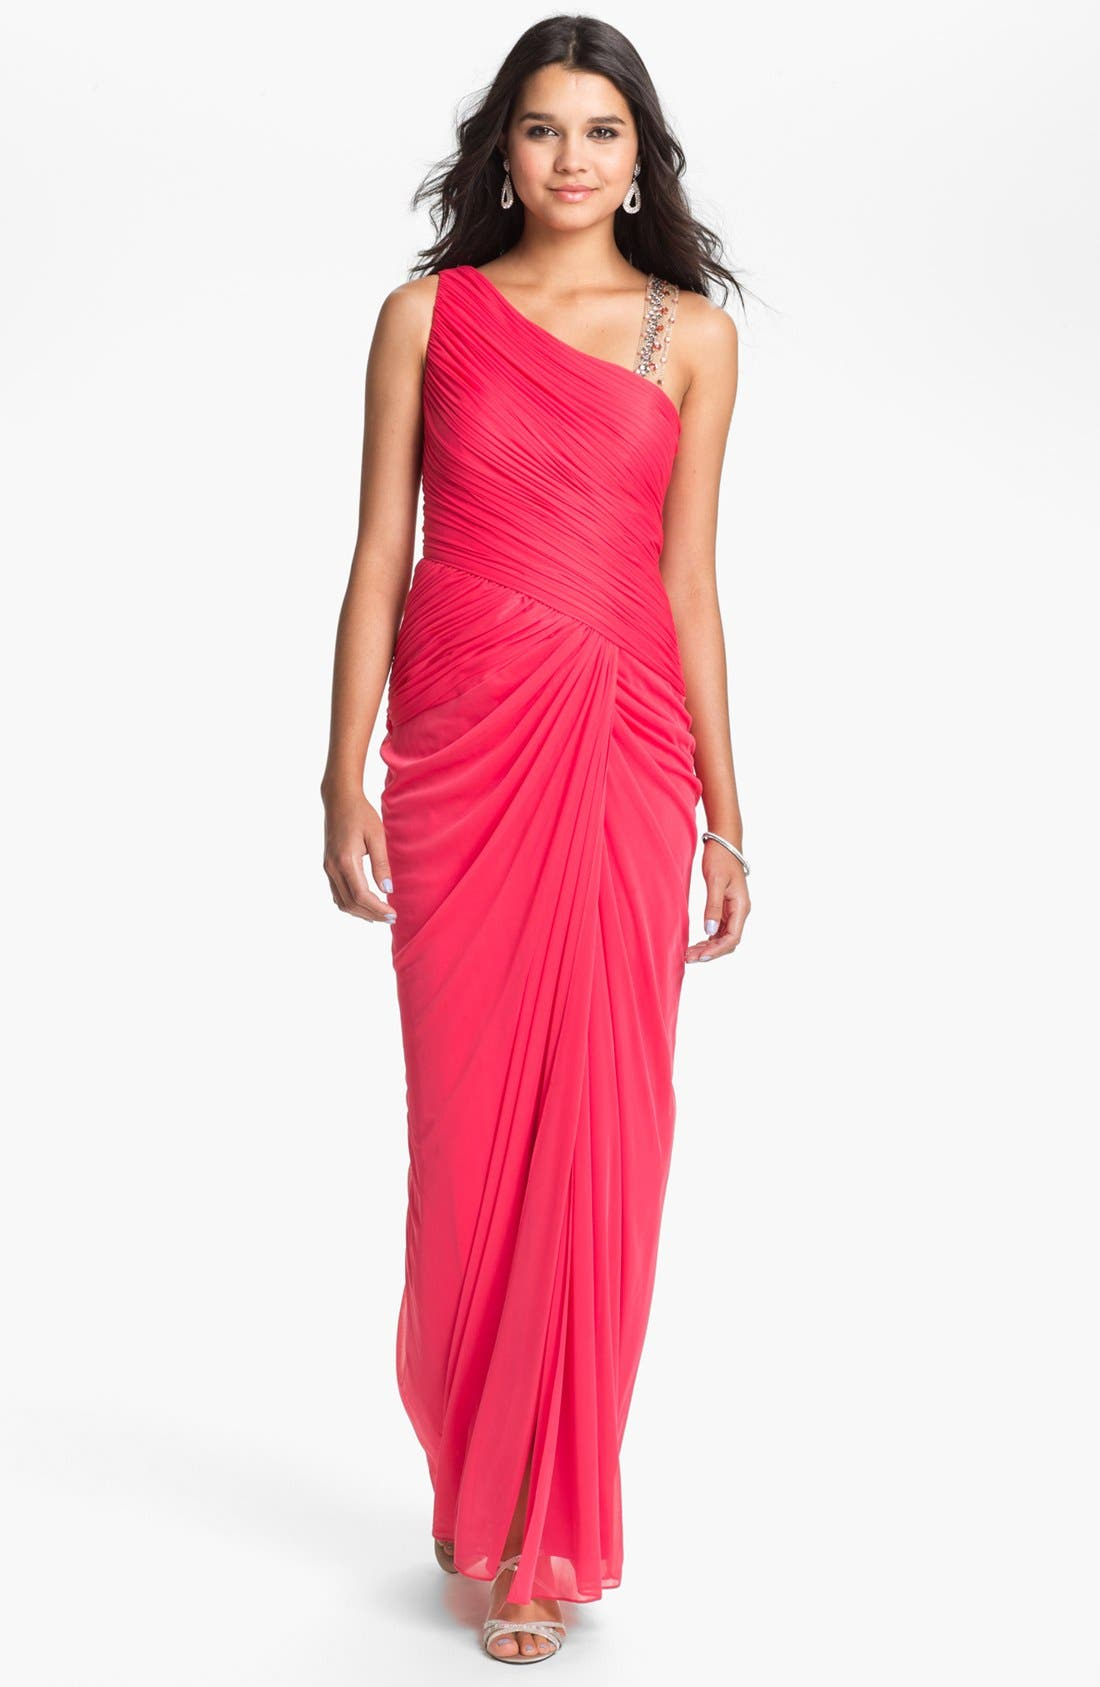 Alternate Image 1 Selected - Adrianna Papell Embellished Mesh Gown (Petite)